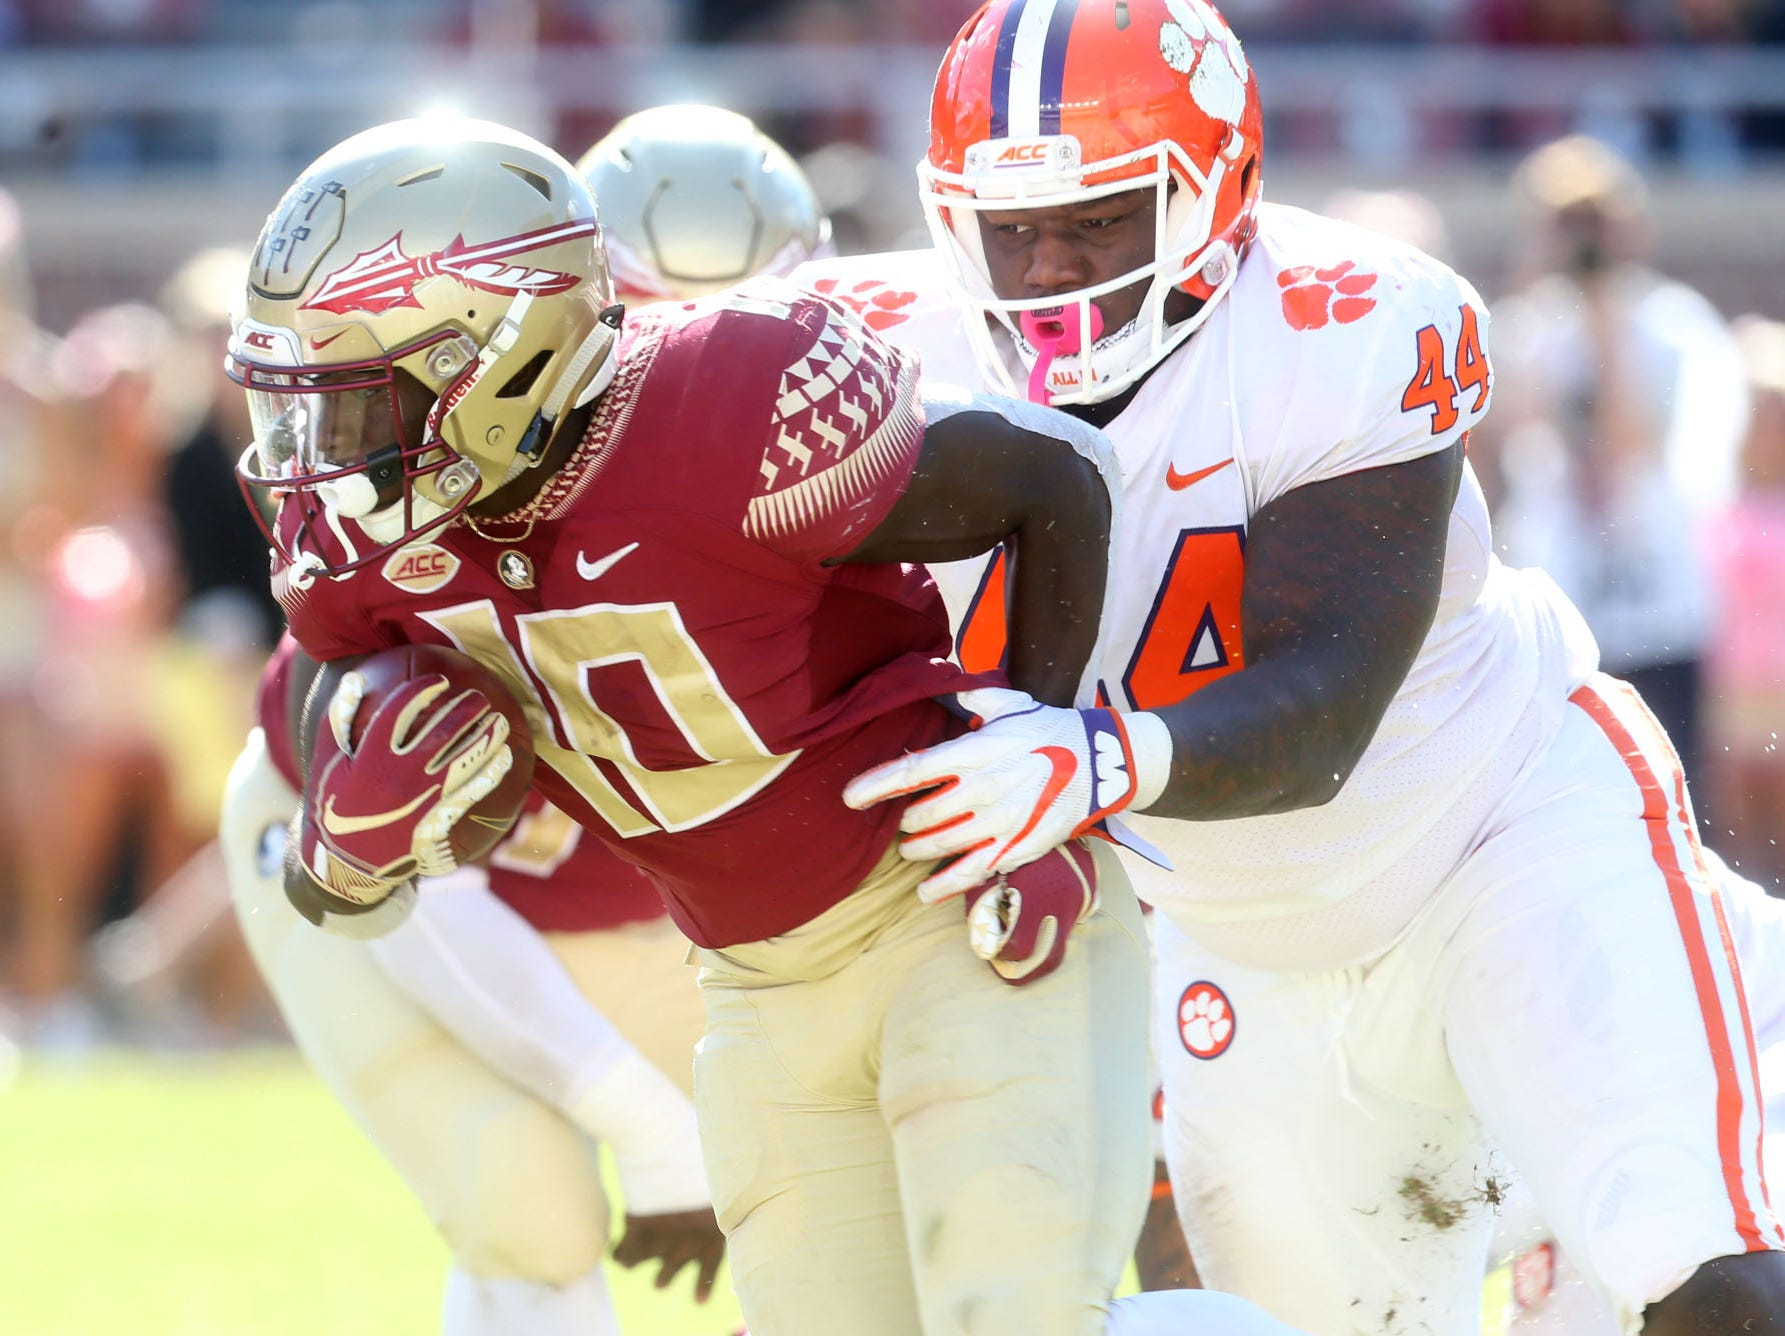 Florida State Seminoles running back Anthony Grant (10) fights off a tackle from Clemson Tigers defensive tackle Nyles Pinckney (44) as the Florida State Seminoles take on the Clemson Tigers in college football at Doak S. Campbell Stadium on Saturday, Oct. 27, 2018.